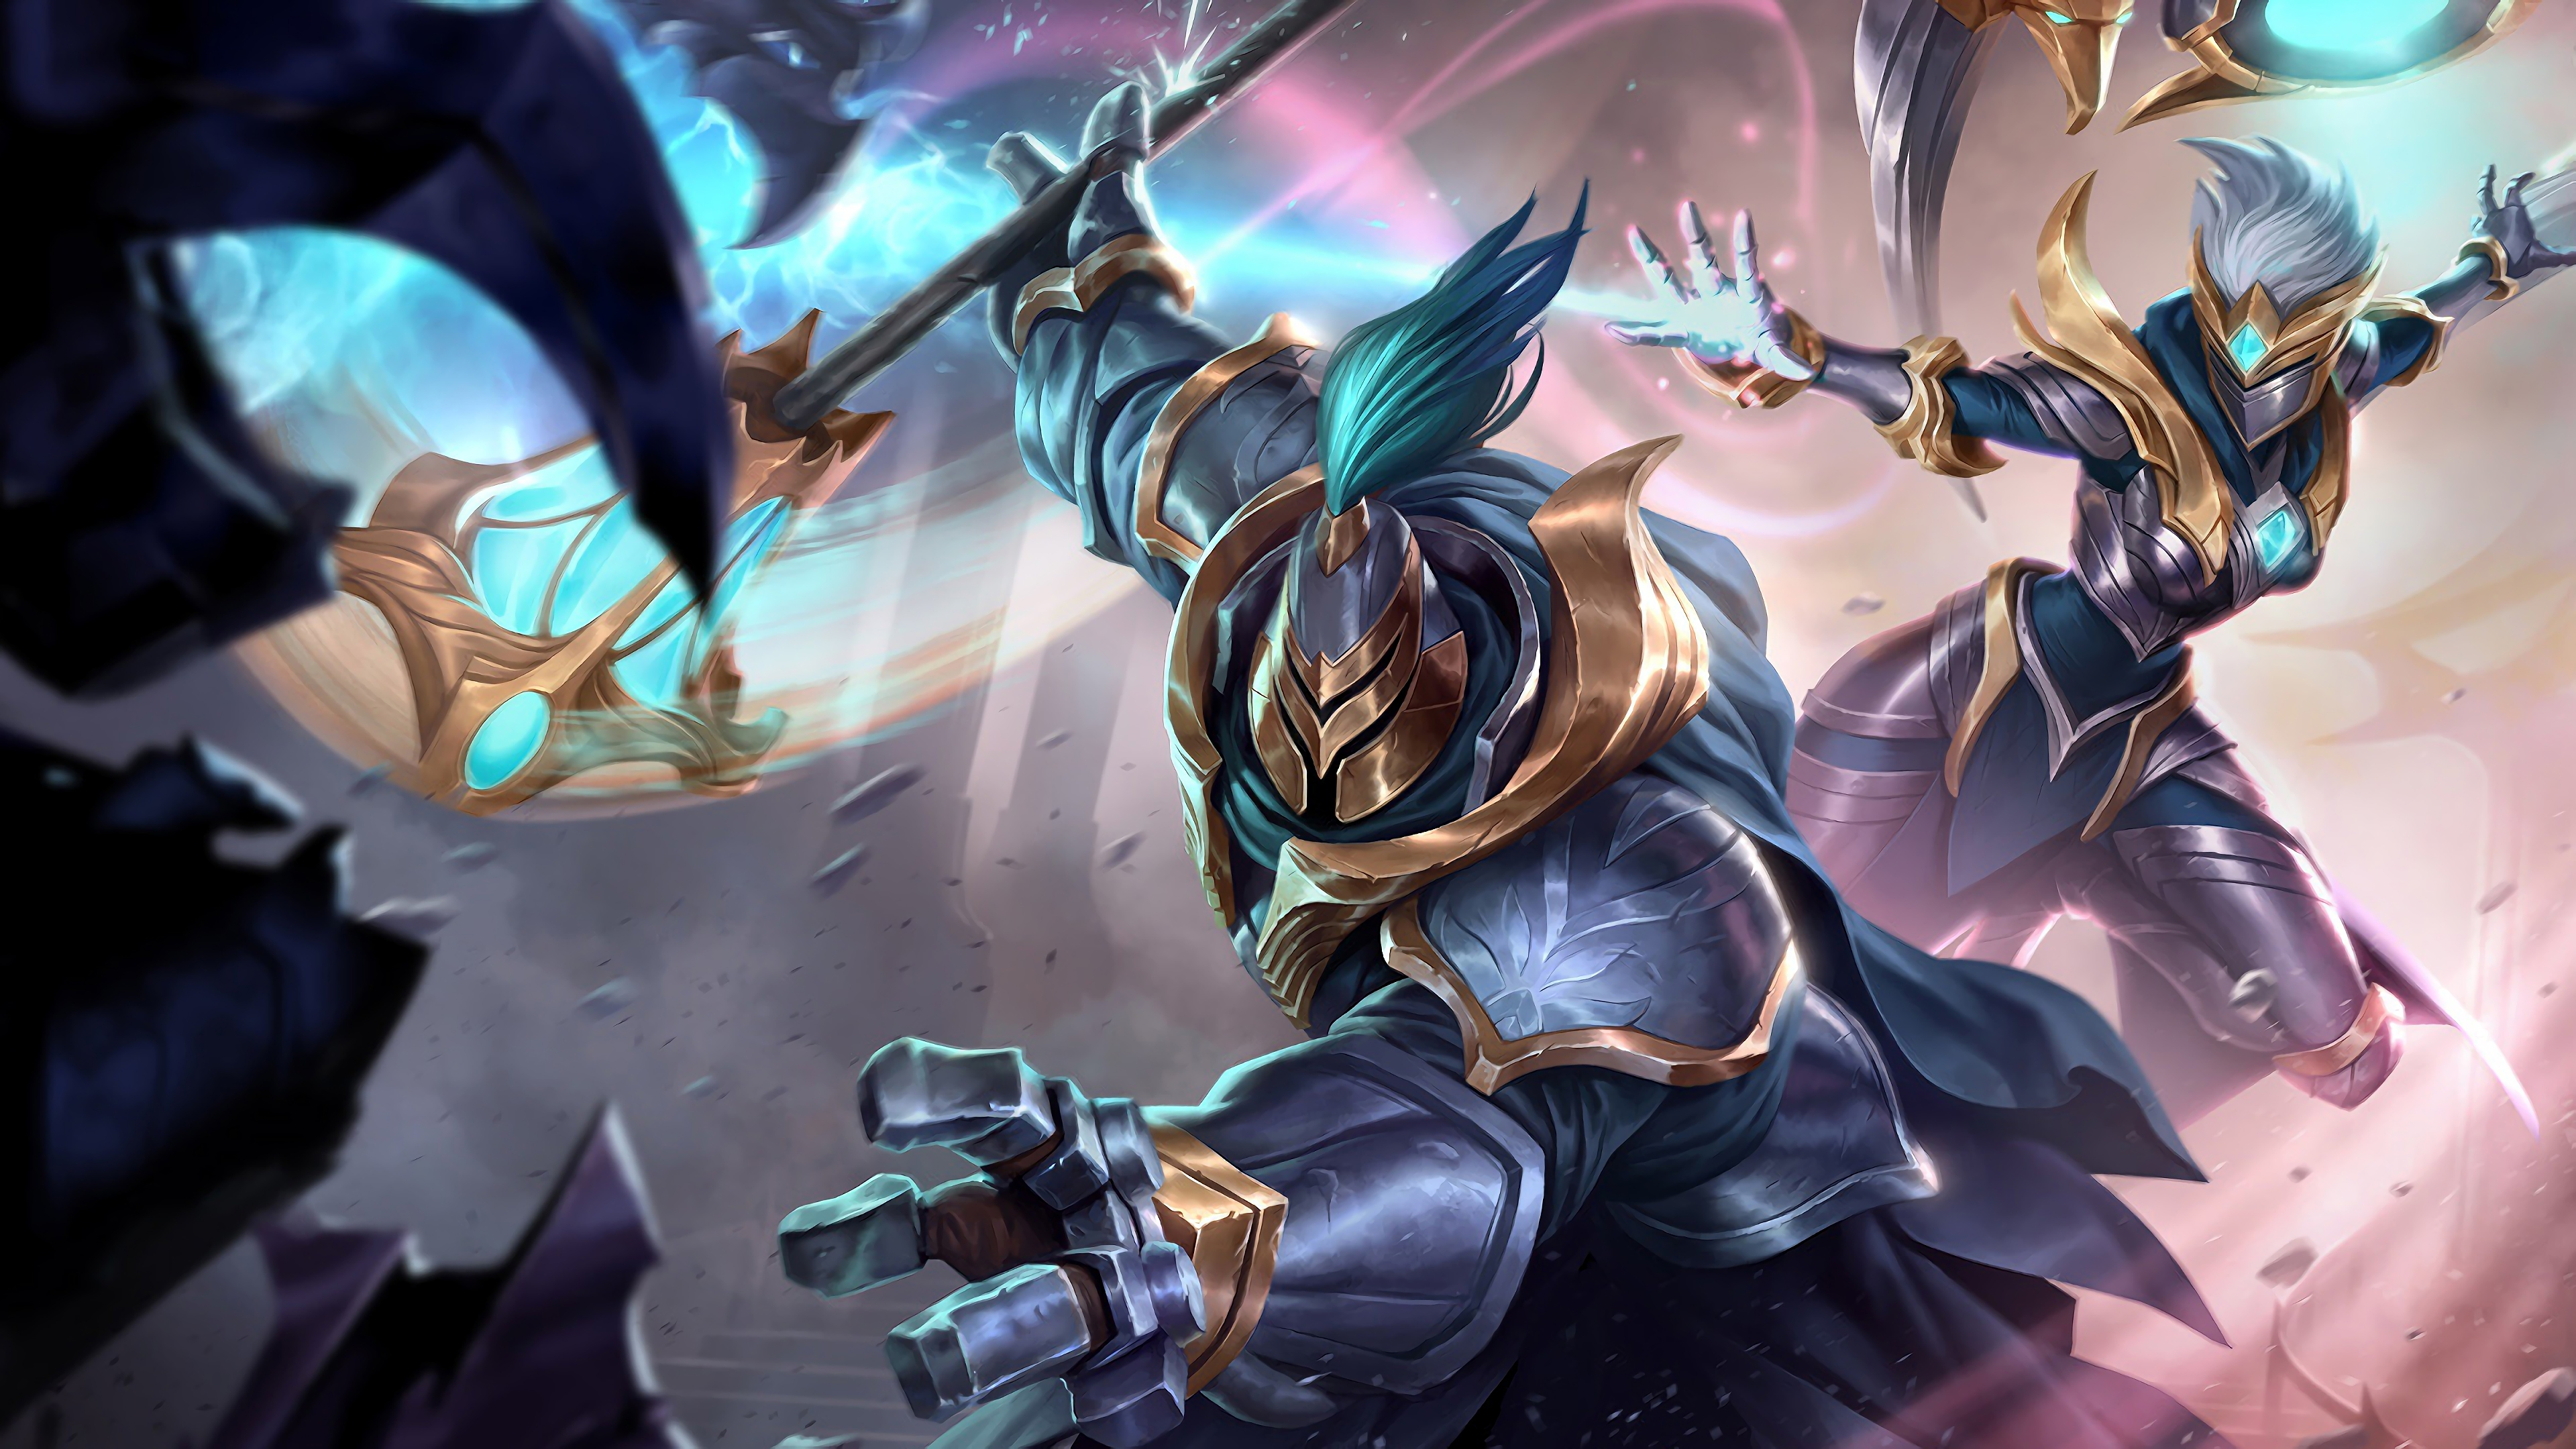 warden jax karma lol splash art league of legends 1574099217 - Warden Jax Karma LoL Splash Art League of Legends - league of legends, karma, Jax